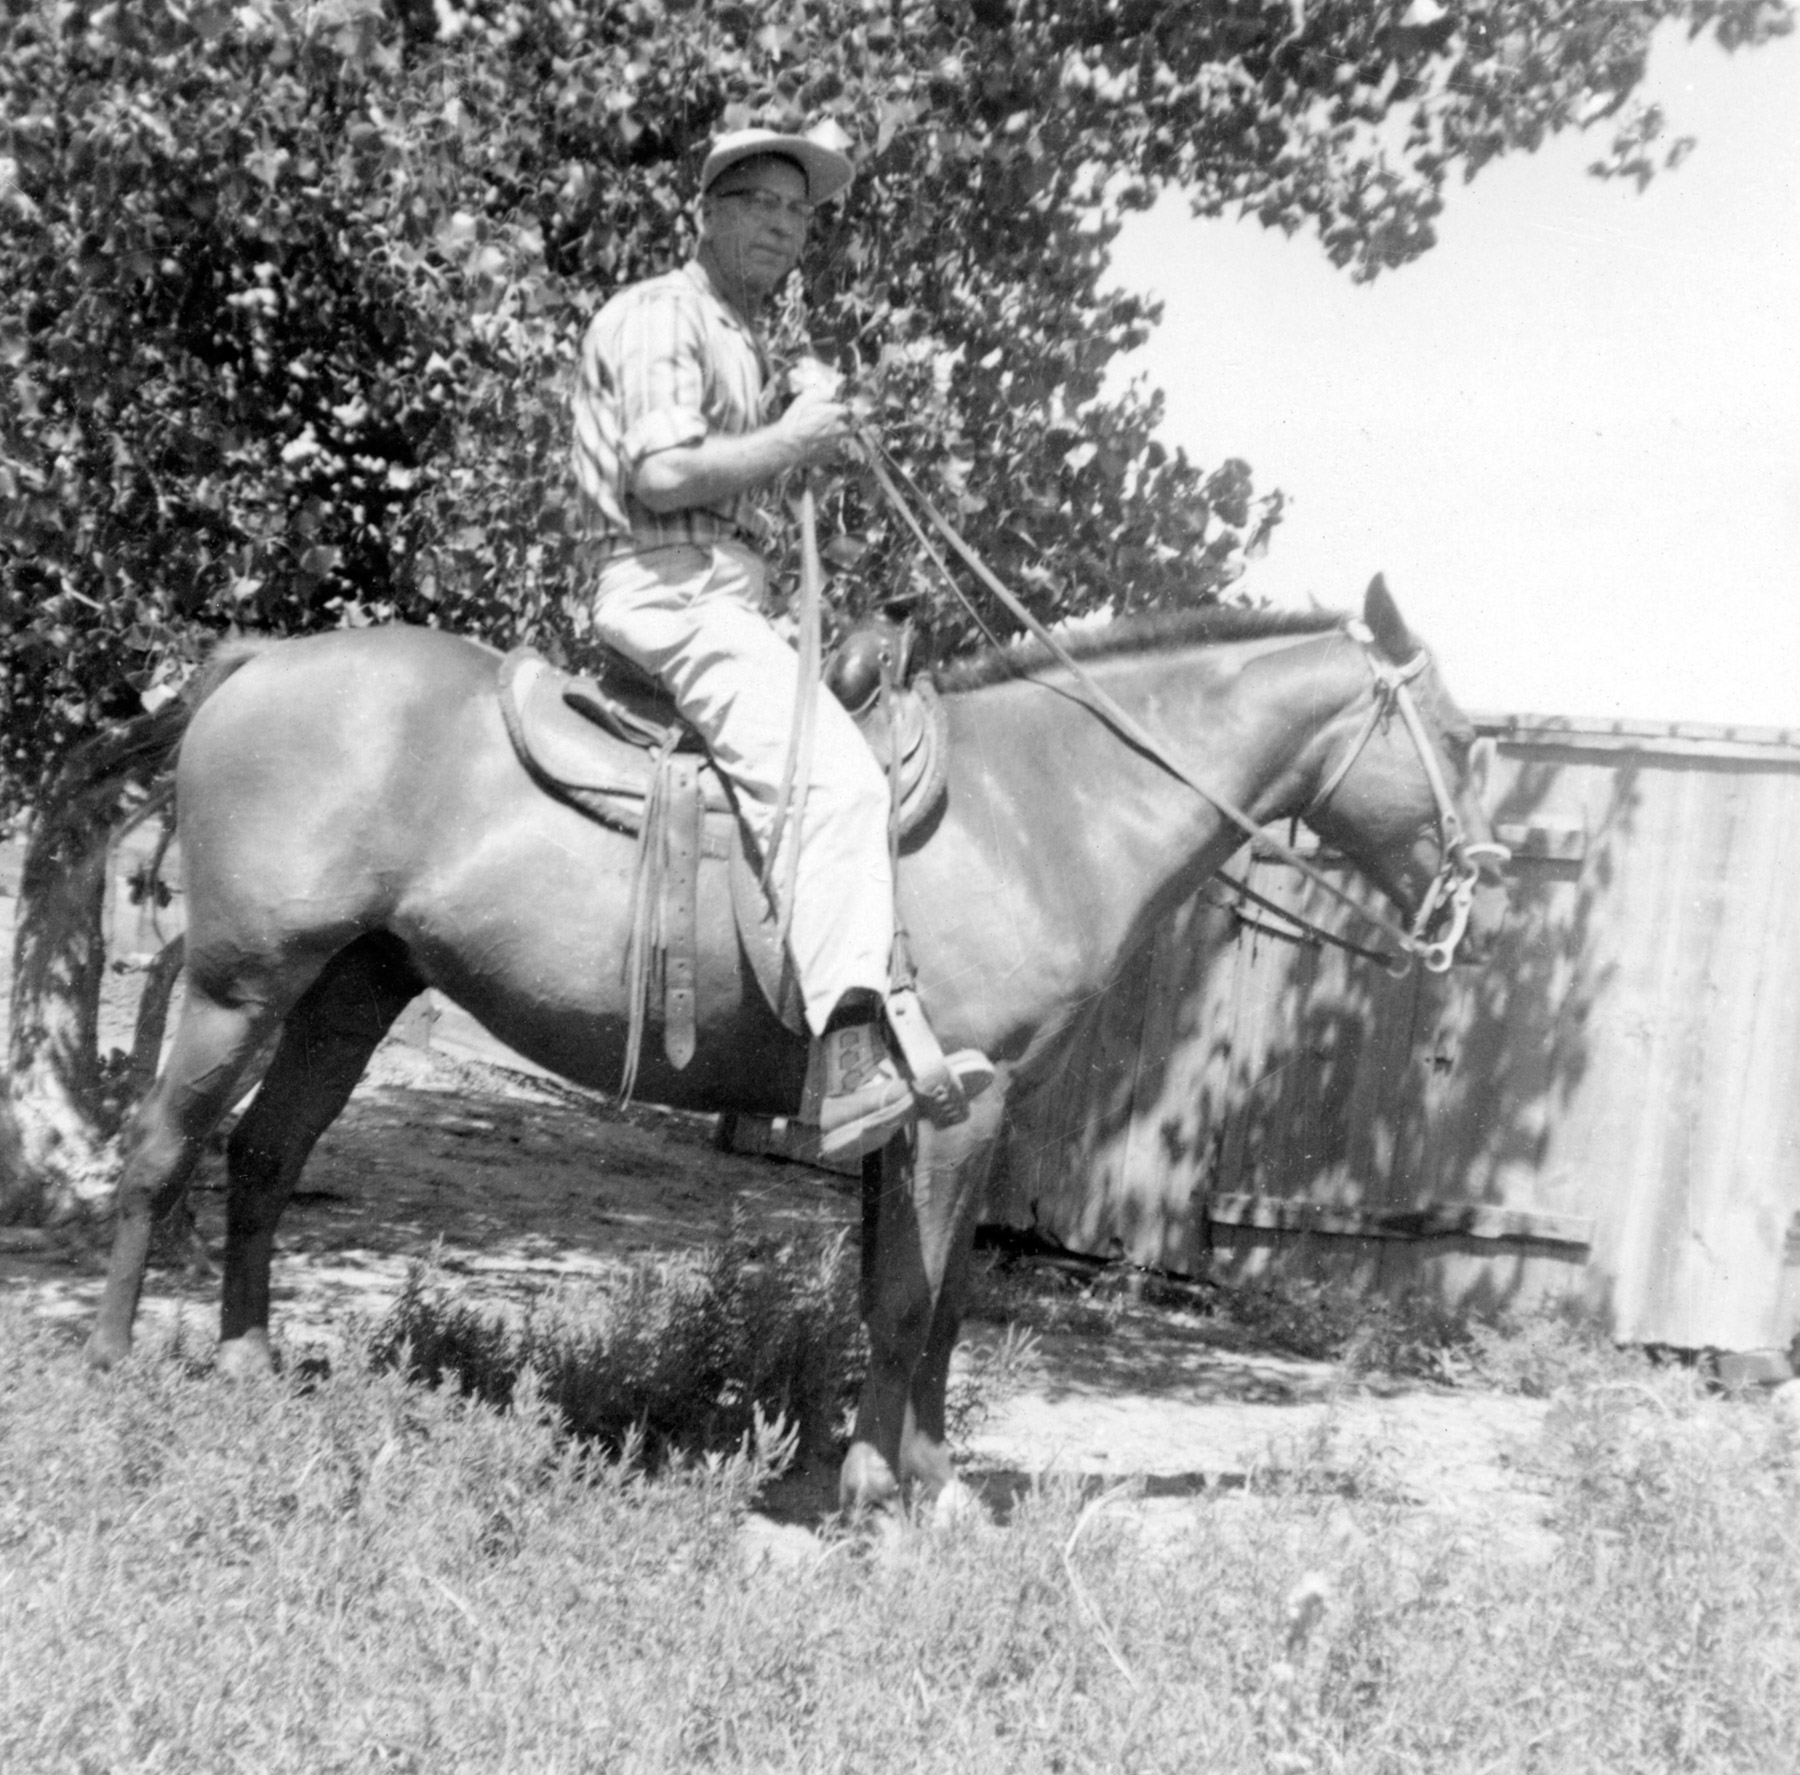 Archie Eastham on Chico, 8/23/1950